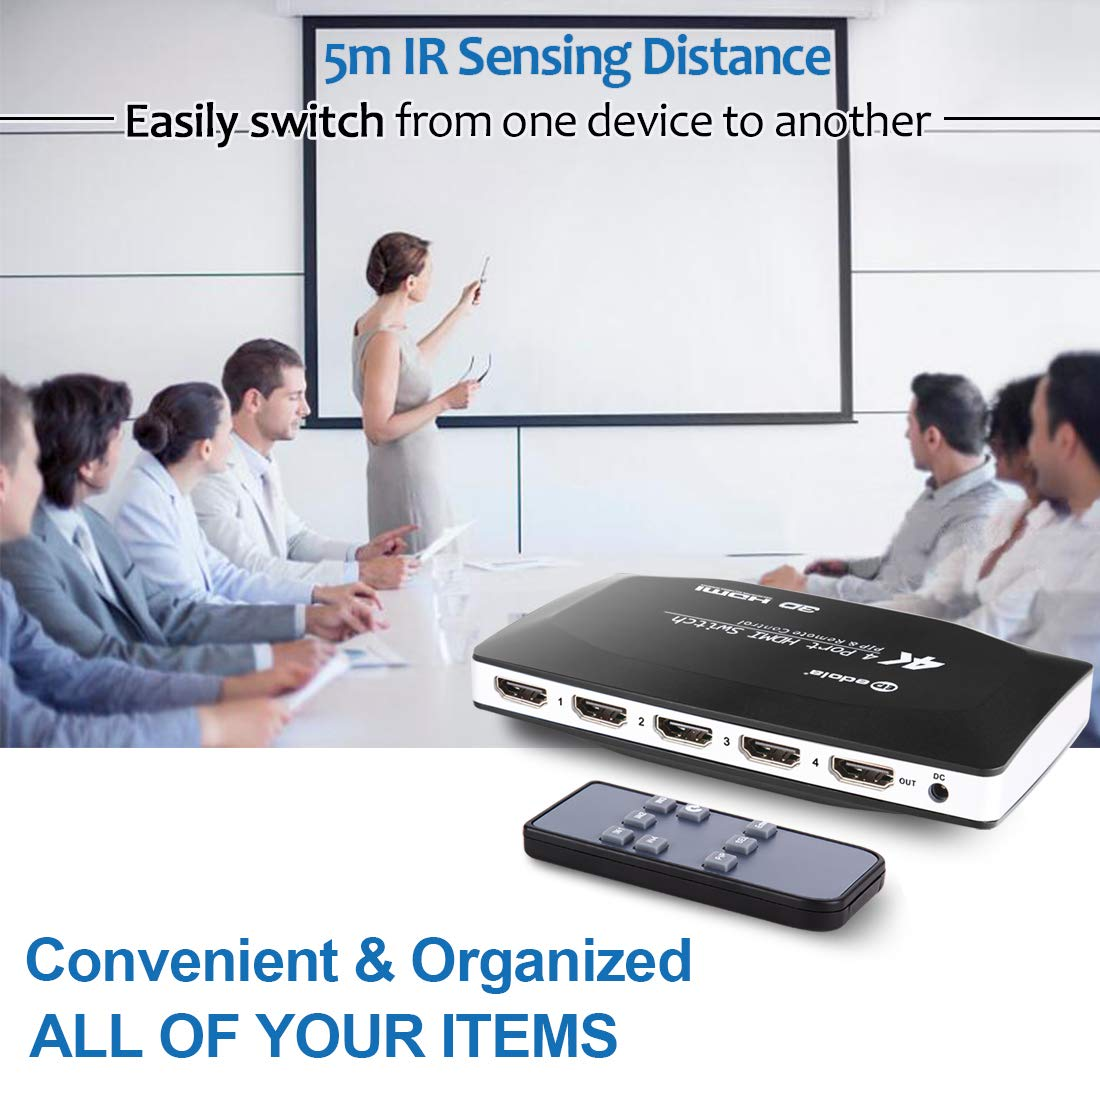 Apple Unix KVM Switch HDMI MAC Linux Netware Android edola 2 Port USB HDMI Kvm Switch with 3.9ft KVM Cable for 2 PC Sharing Cables /& USB Peripheral Support 4K@60Hz Compatible with Windows